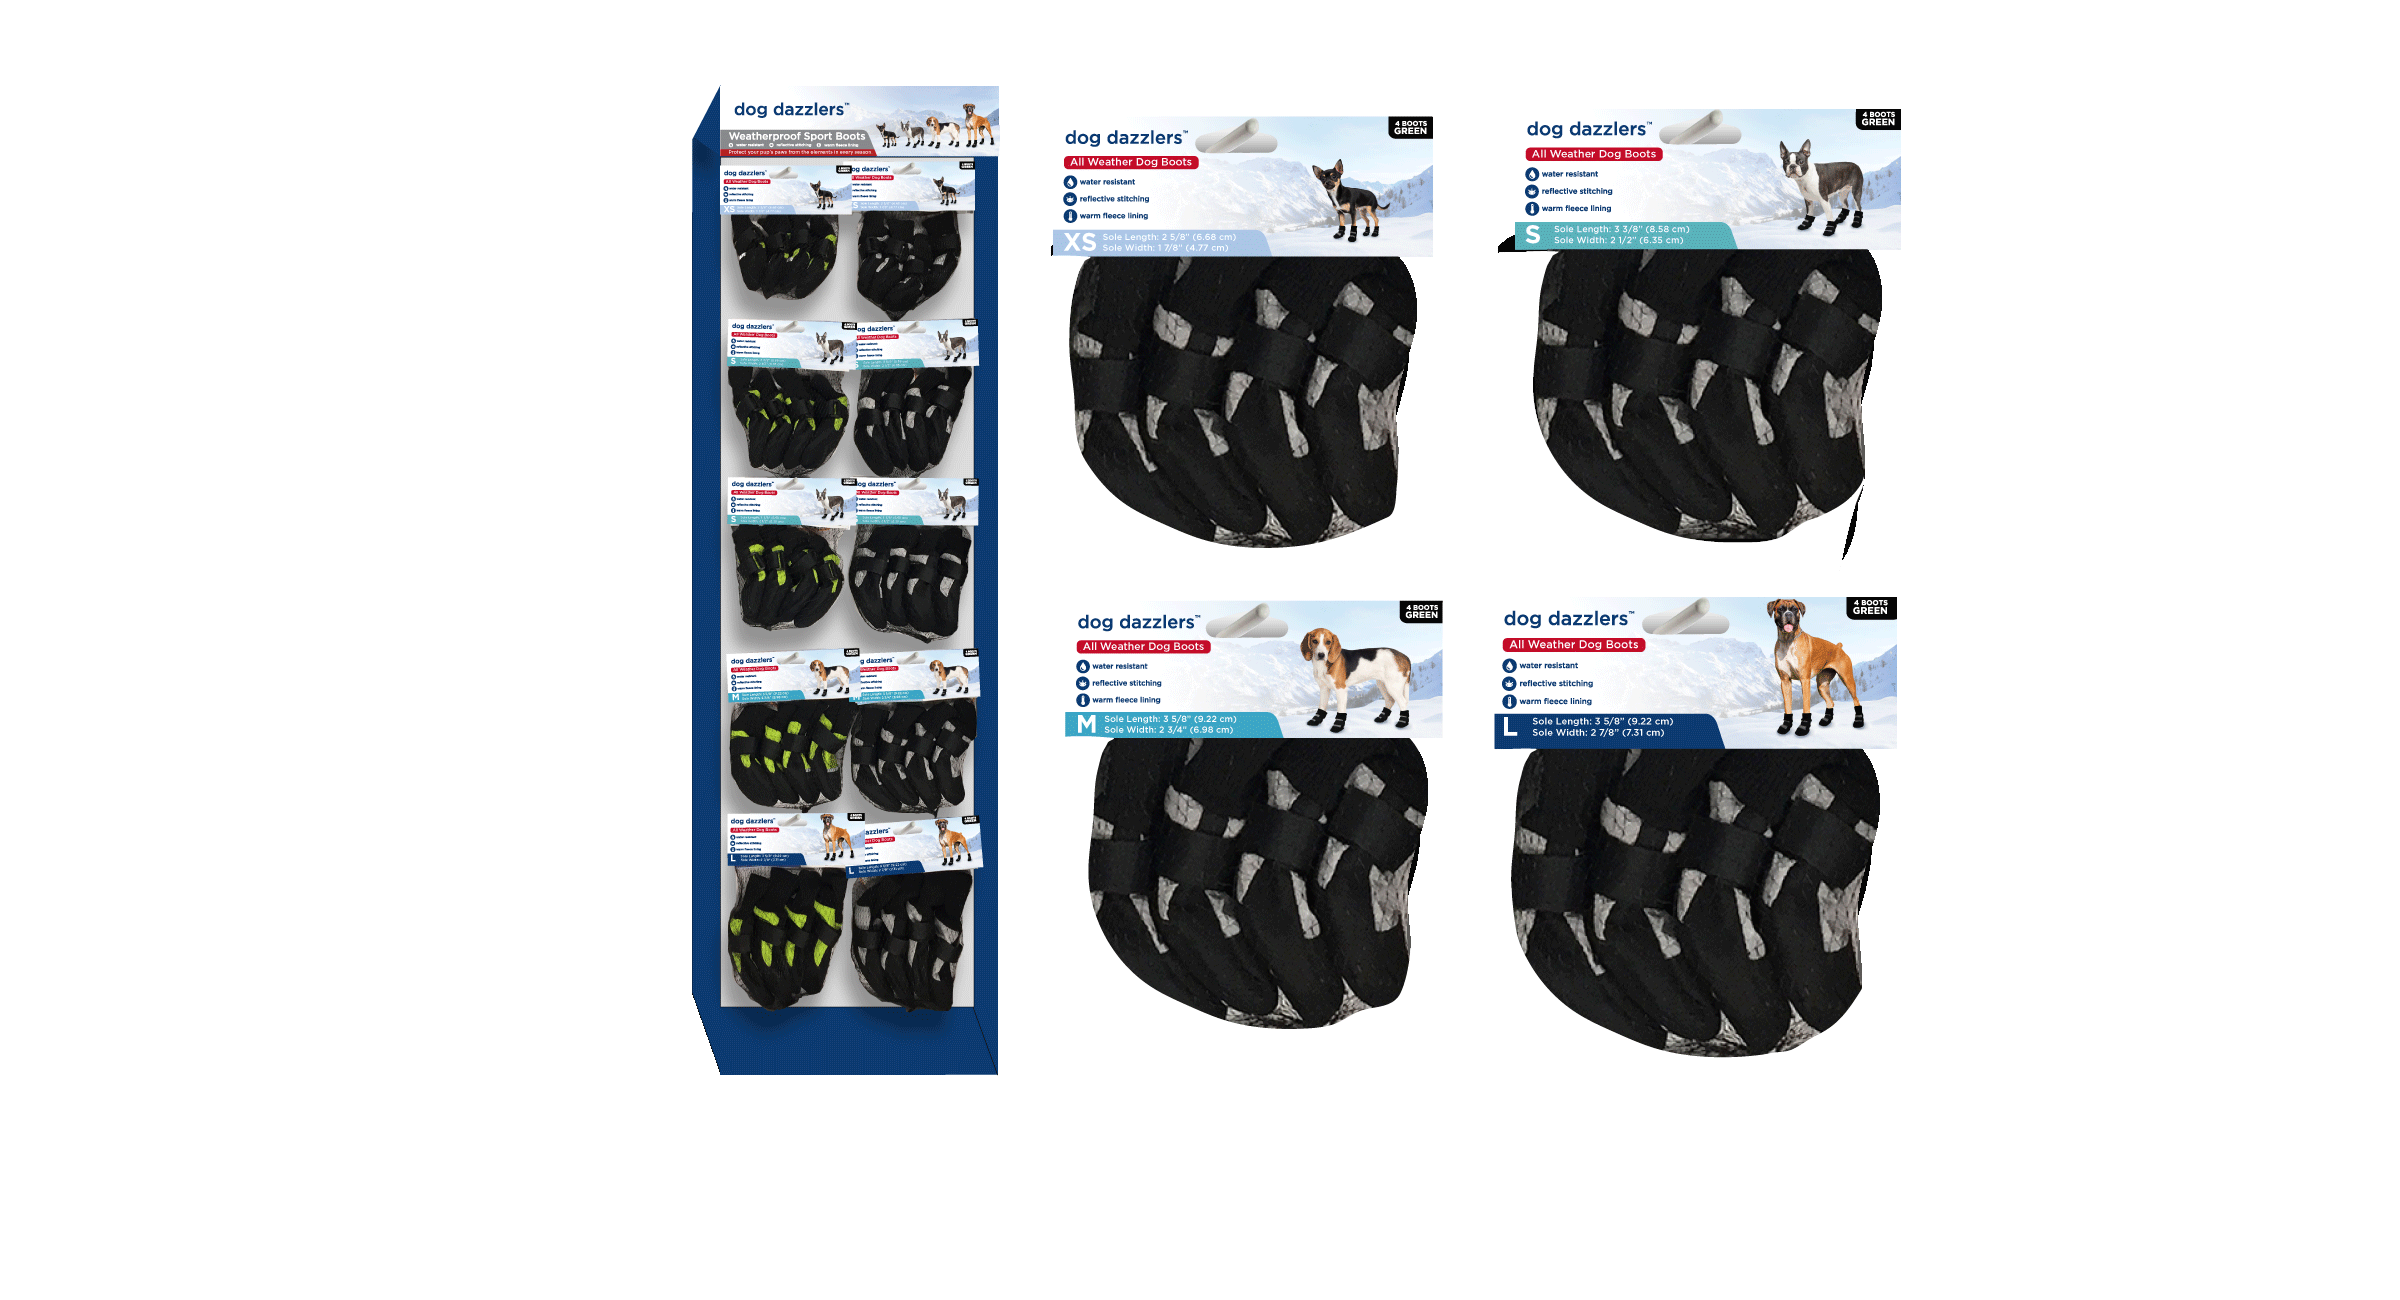 Dog Dazzler's Packaging